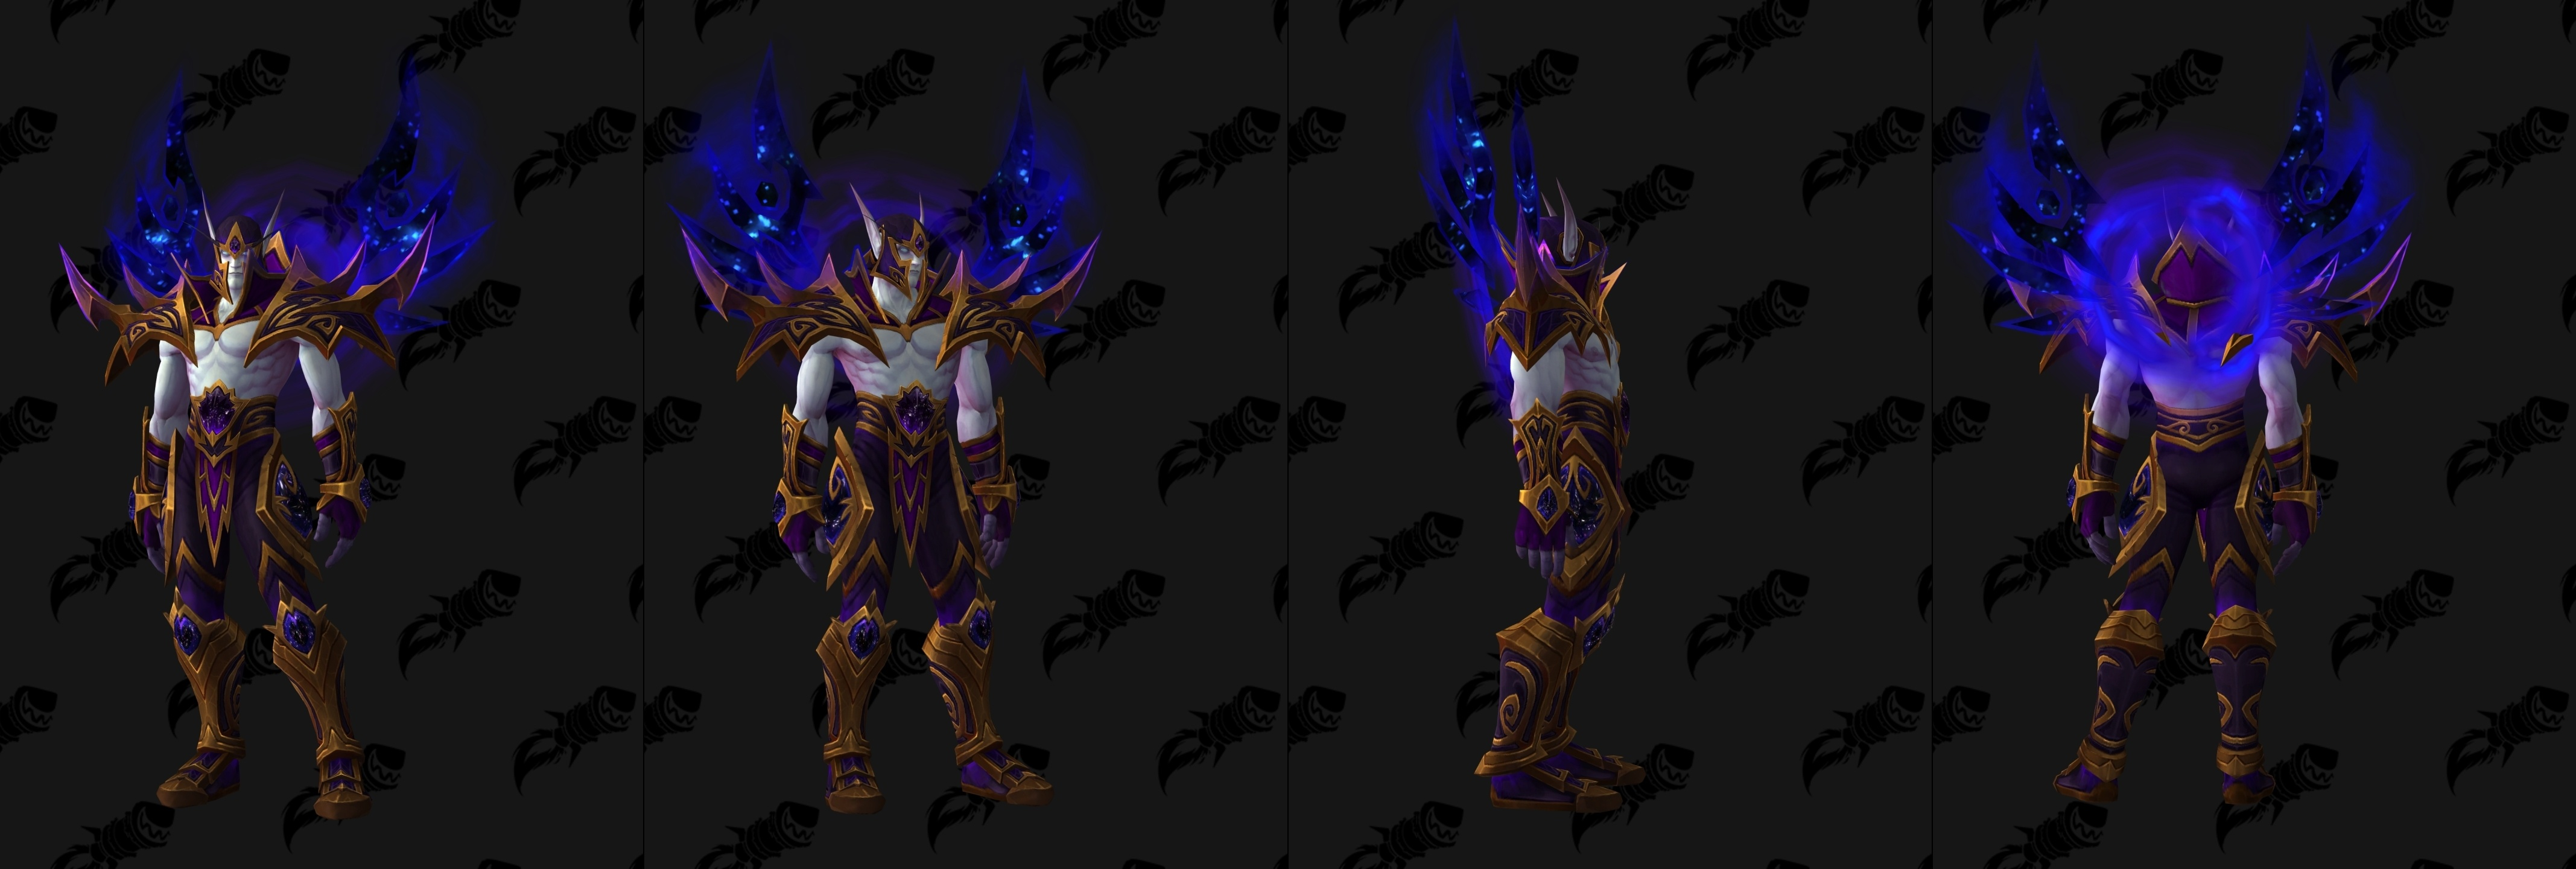 Heritage Armor Sets Guides Wowhead Void elf tabards are now on the ptr. heritage armor sets guides wowhead